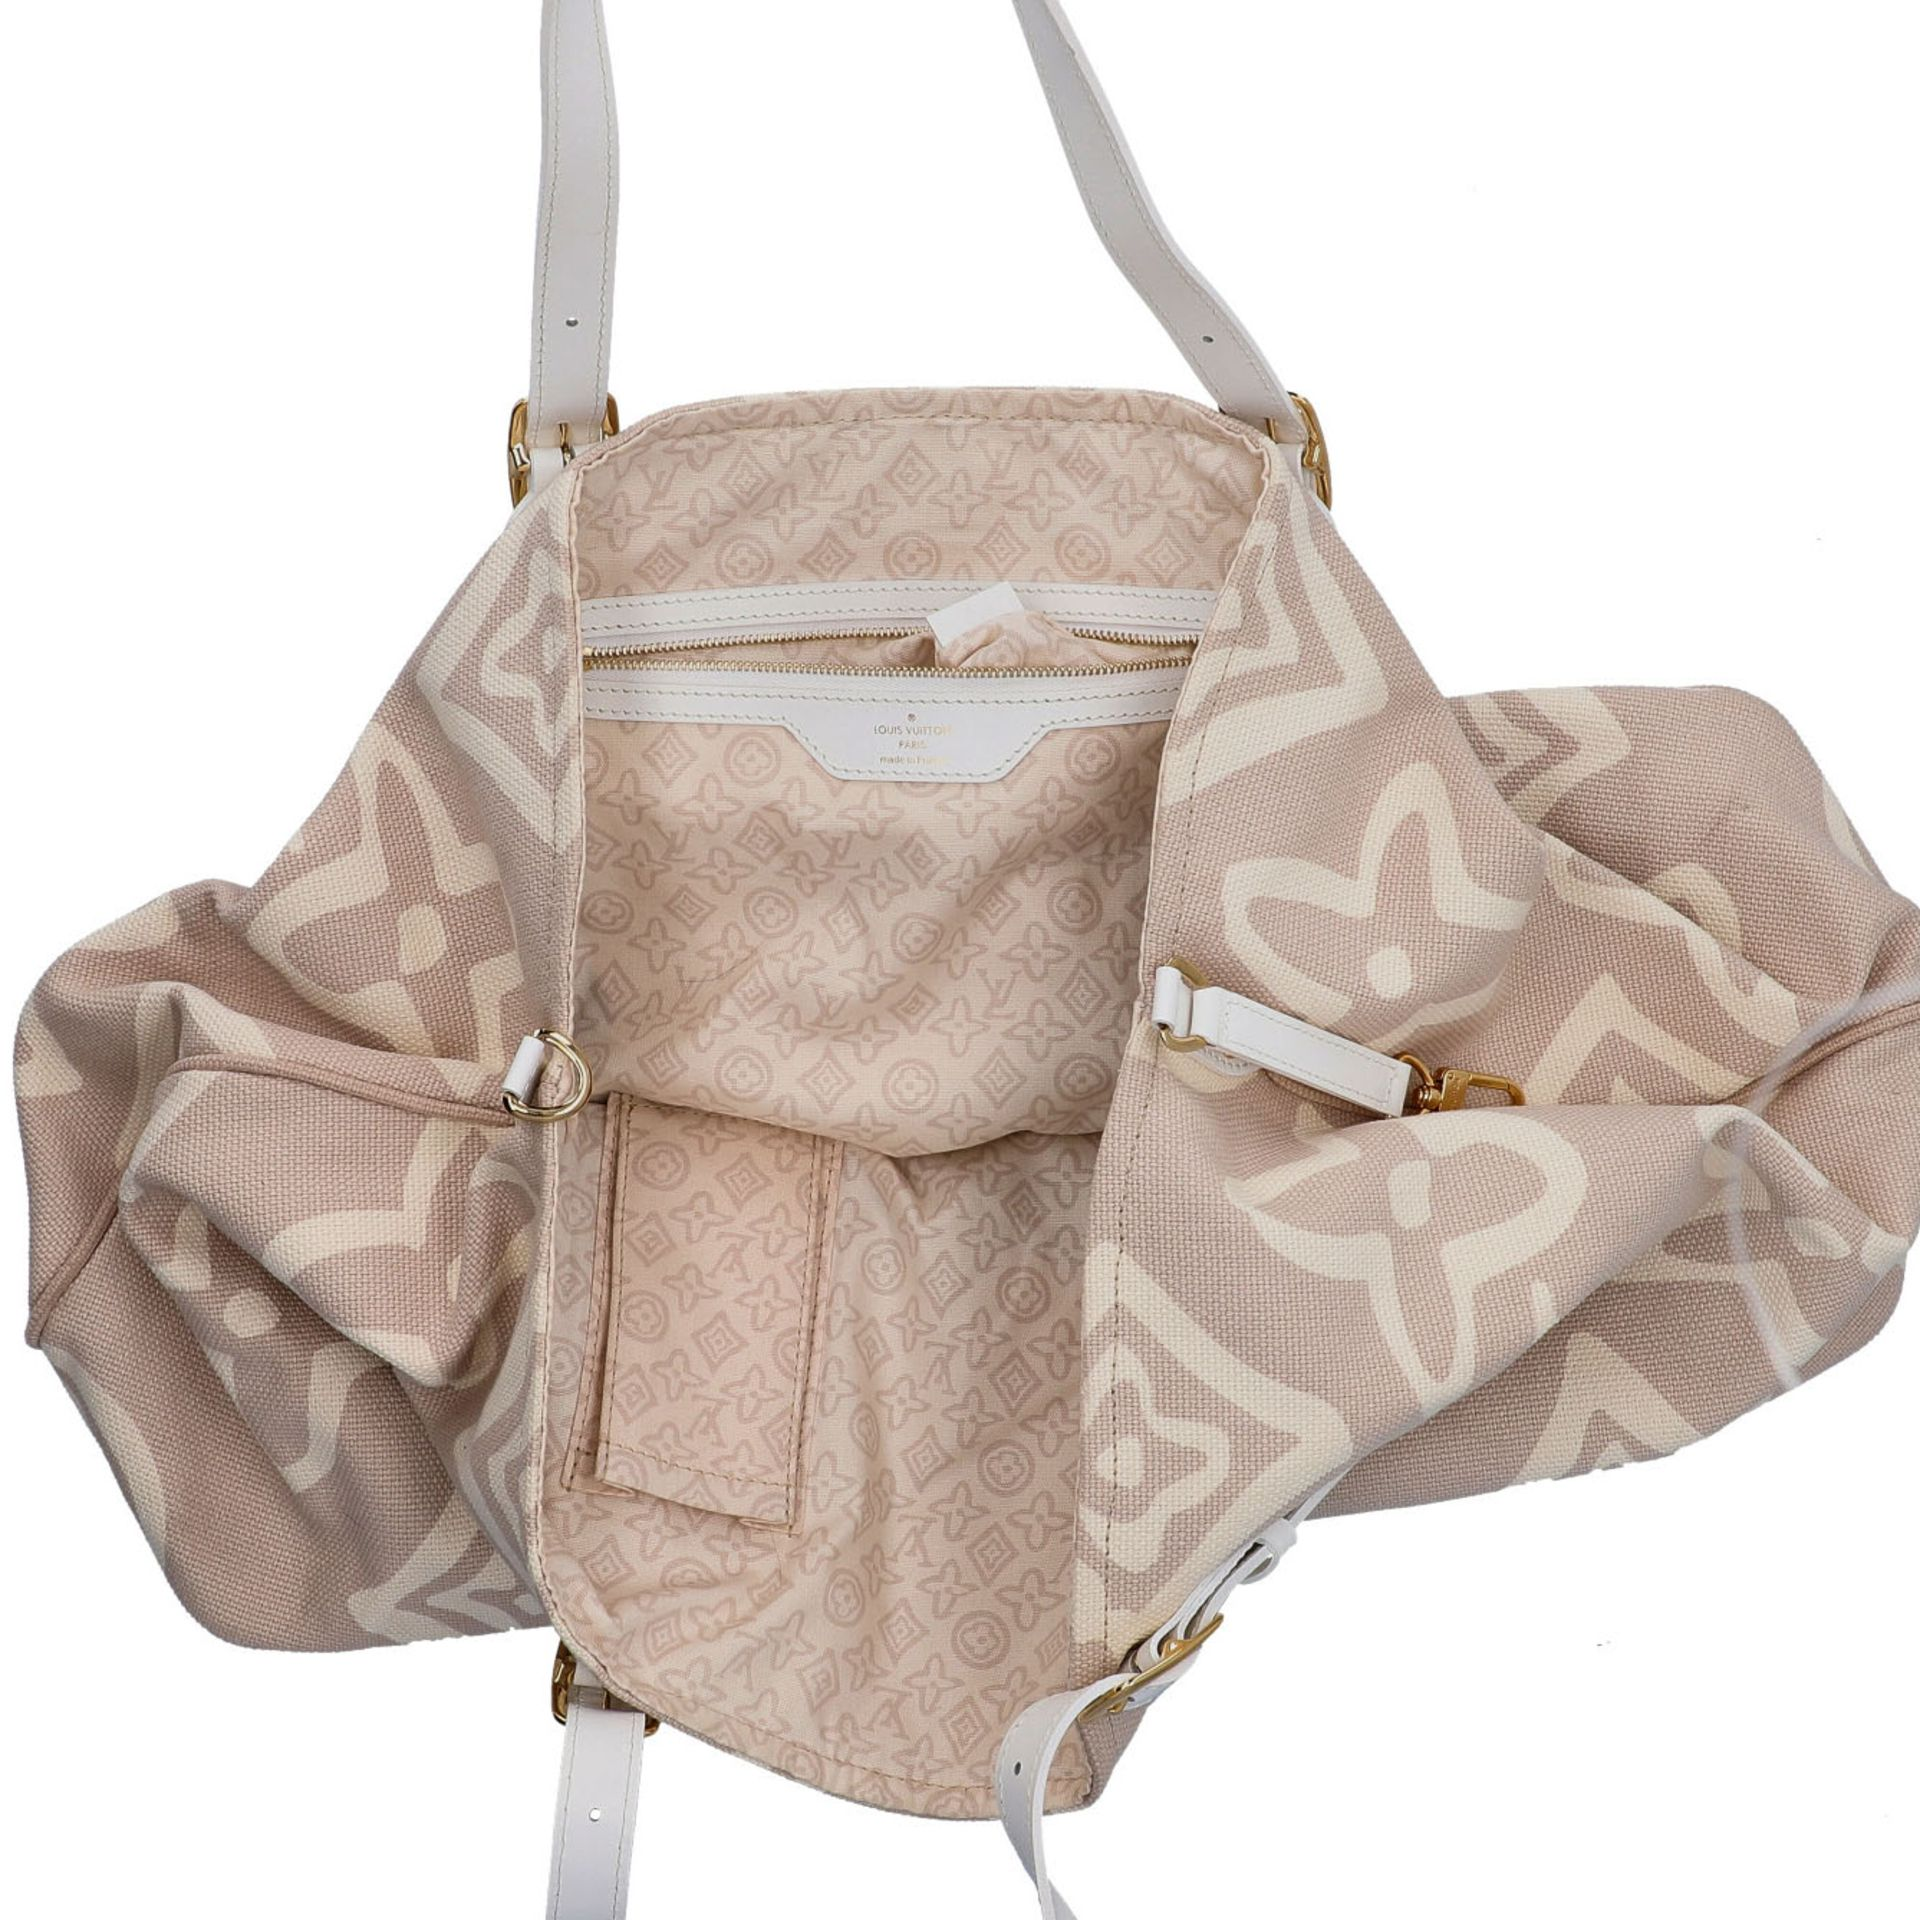 "LOUIS VUITTON Shopper ""TAHITIENNE GM"", Koll.: 2008 Designed by Marc Jacobs, inspiriert - Image 6 of 9"